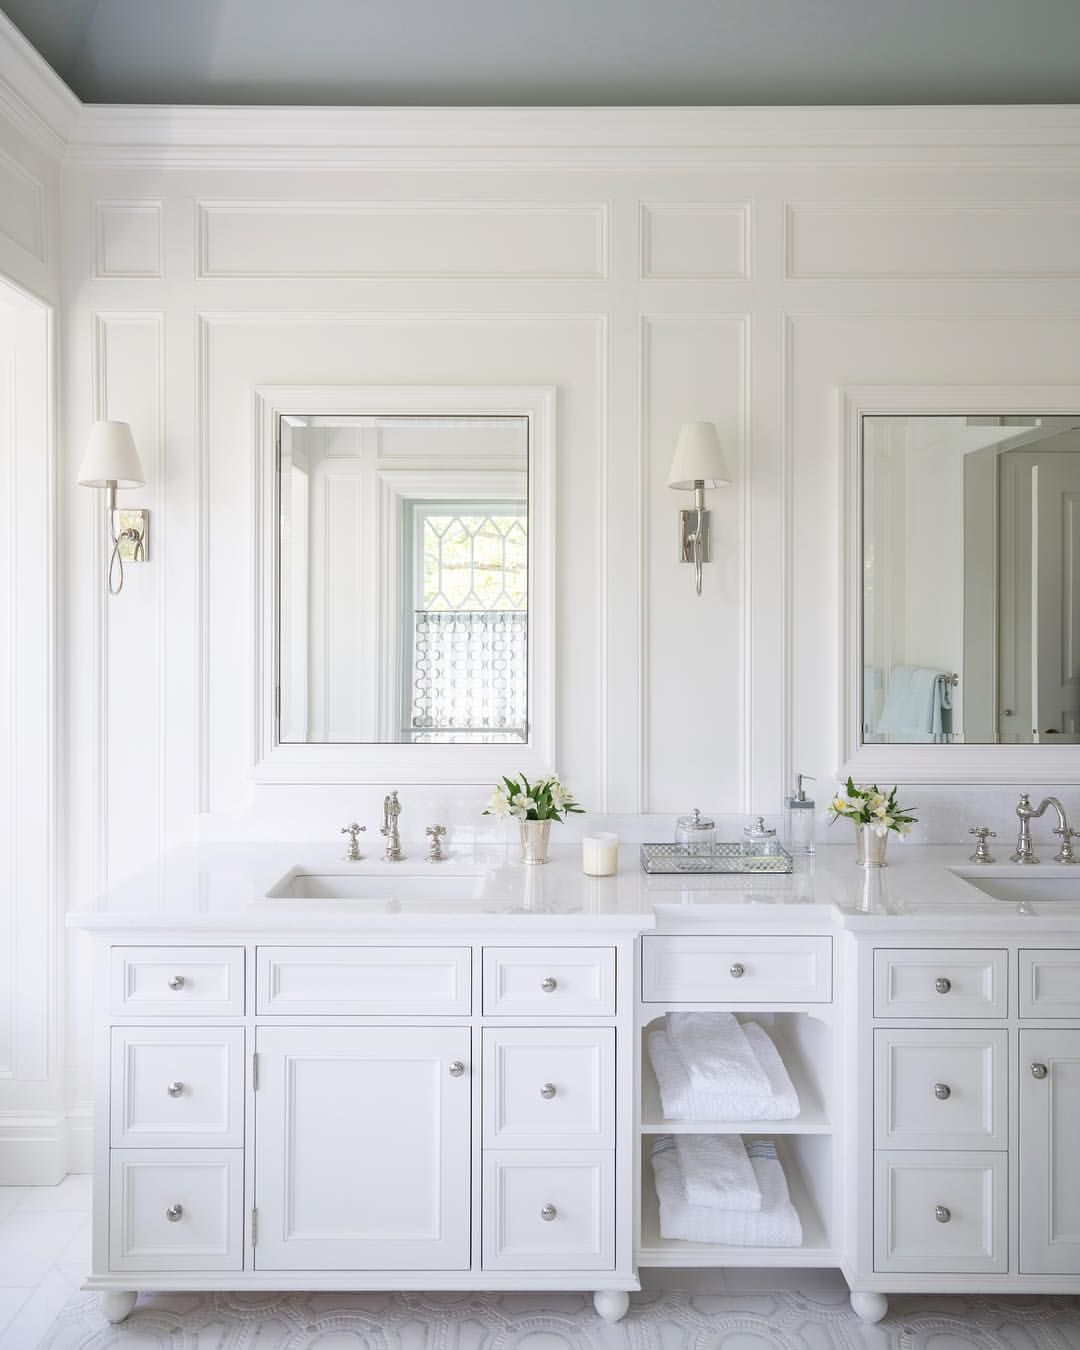 In This Master Bath Beveled Recessed Medicine Cabinets Nestle Into The Tall Paneling Above A Doub White Master Bathroom White Bathroom Designs Bathroom Design [ 1350 x 1080 Pixel ]